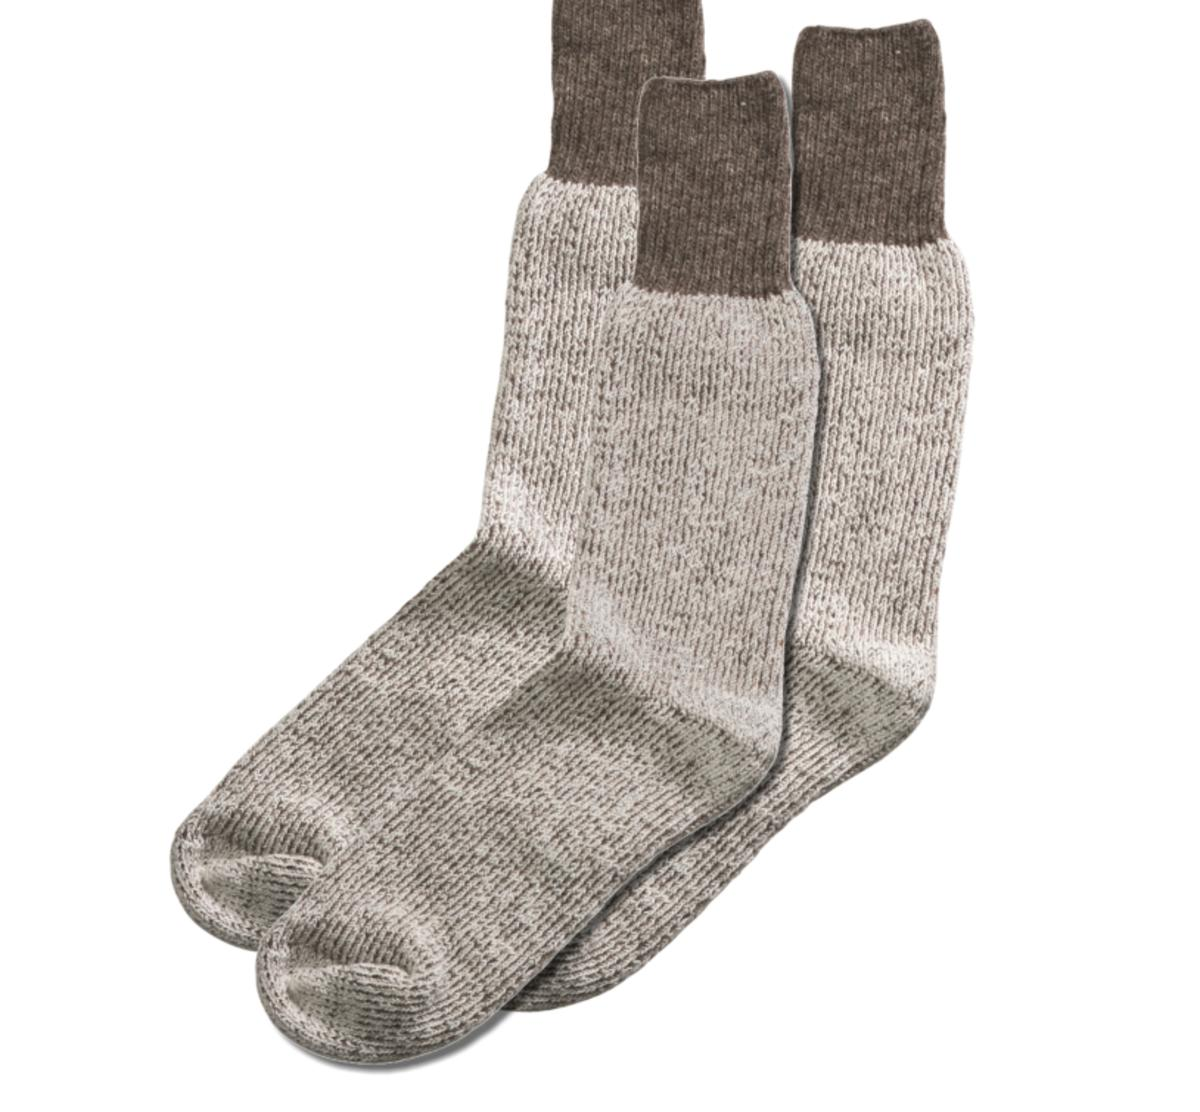 3-Pack of Warm 100% Wool Boot Socks by Huskie, Size 10 - 11.5